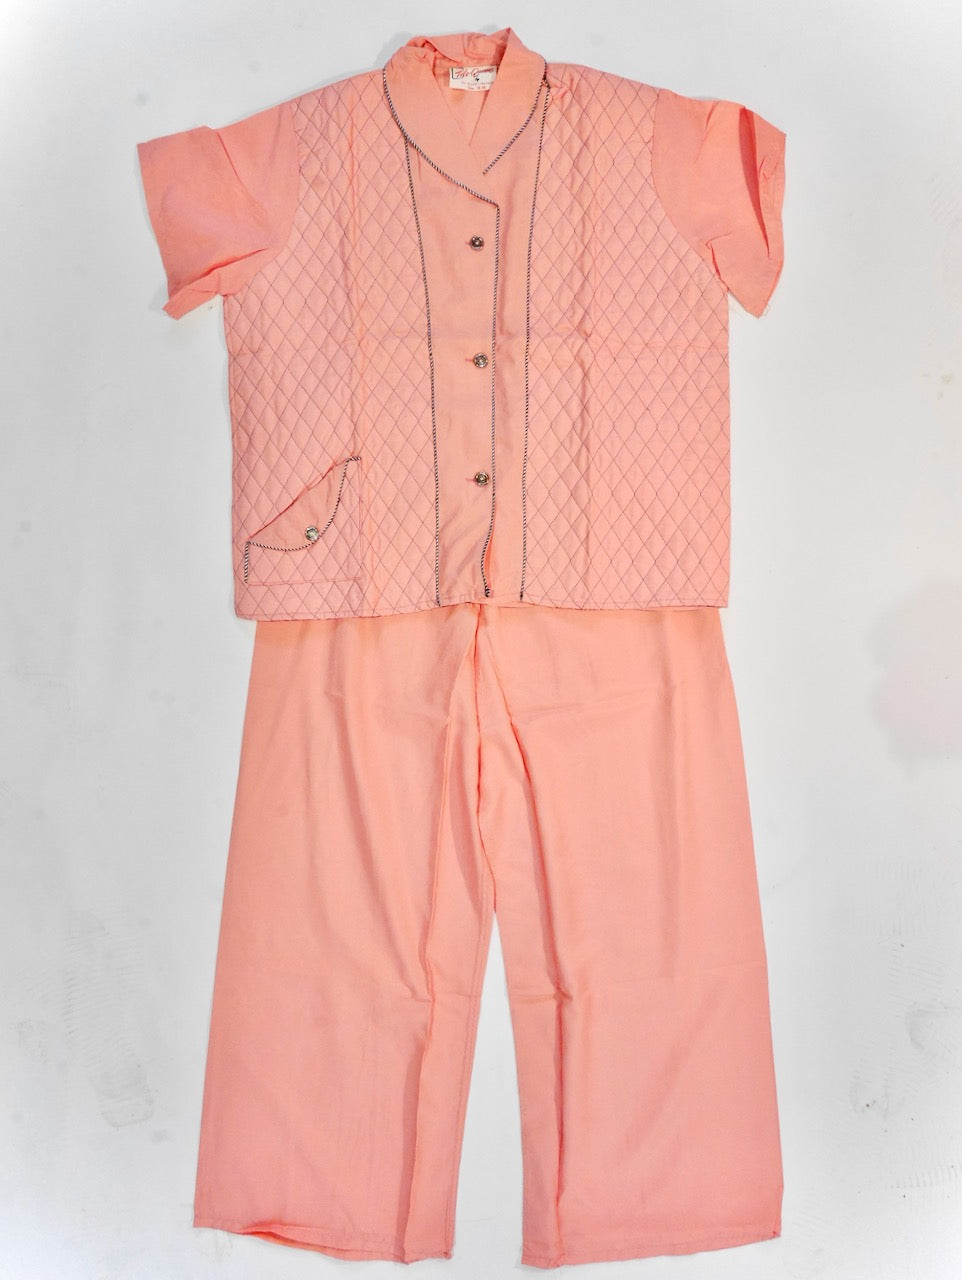 1950s Tele-Queen New/Old Stock Quilted Pajama Set!